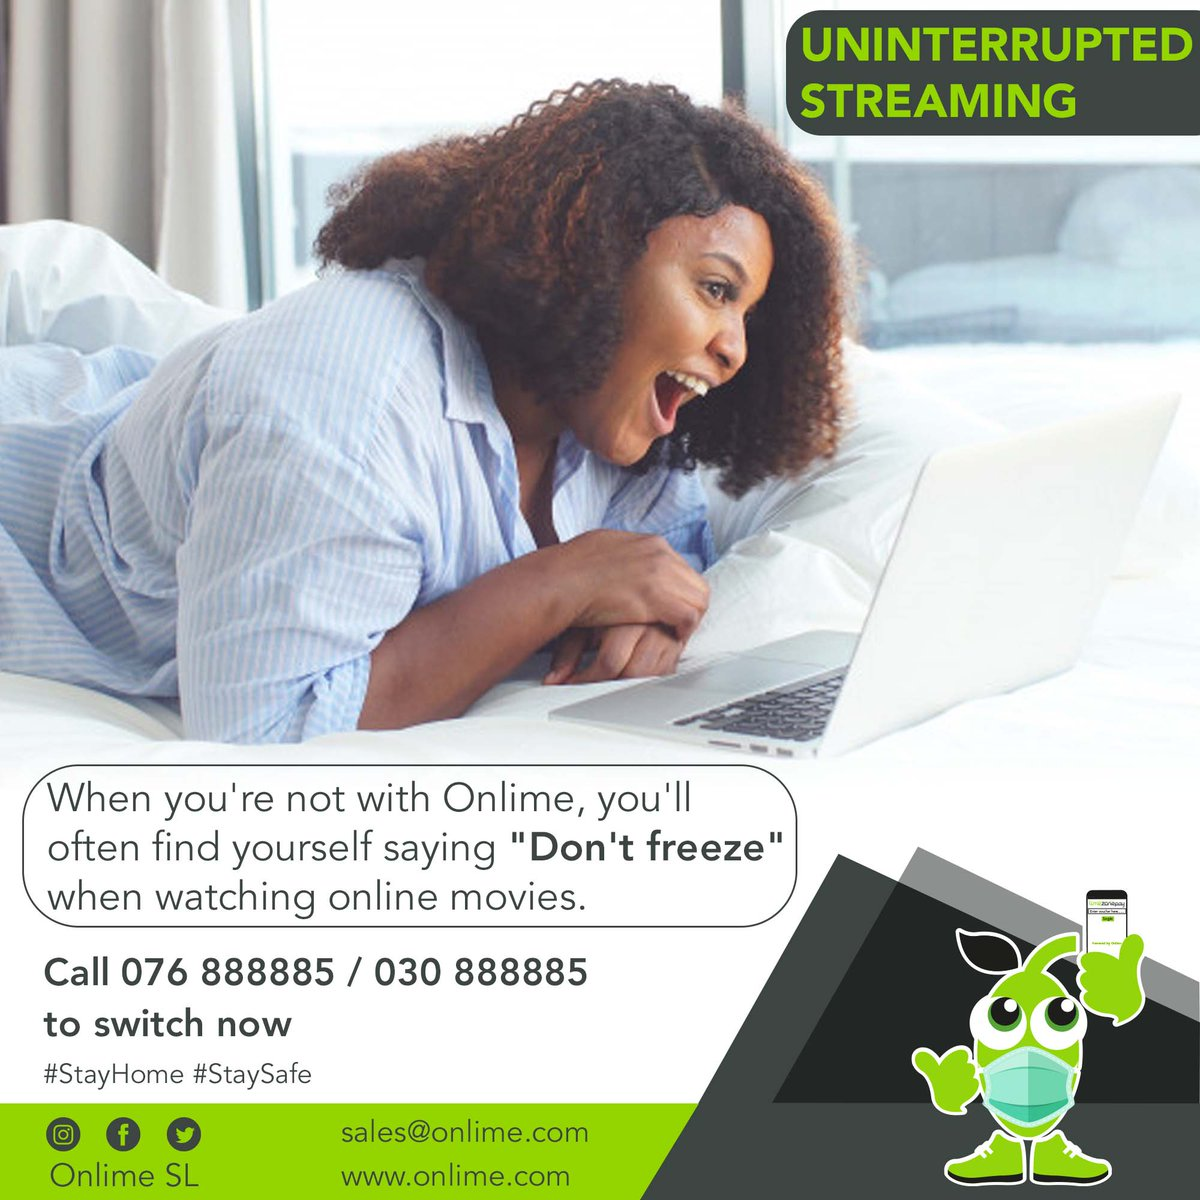 """Get connected to Onlime's super-fast internet speed and say goodbye to """"Don't Freeze"""". #OnlimeInternet Call 076 888885 / 030 888885 or email sales@onlime.sl for more info. #SierraLeone #Freetown #SaloneTwitter https://t.co/dYdE40in2p"""